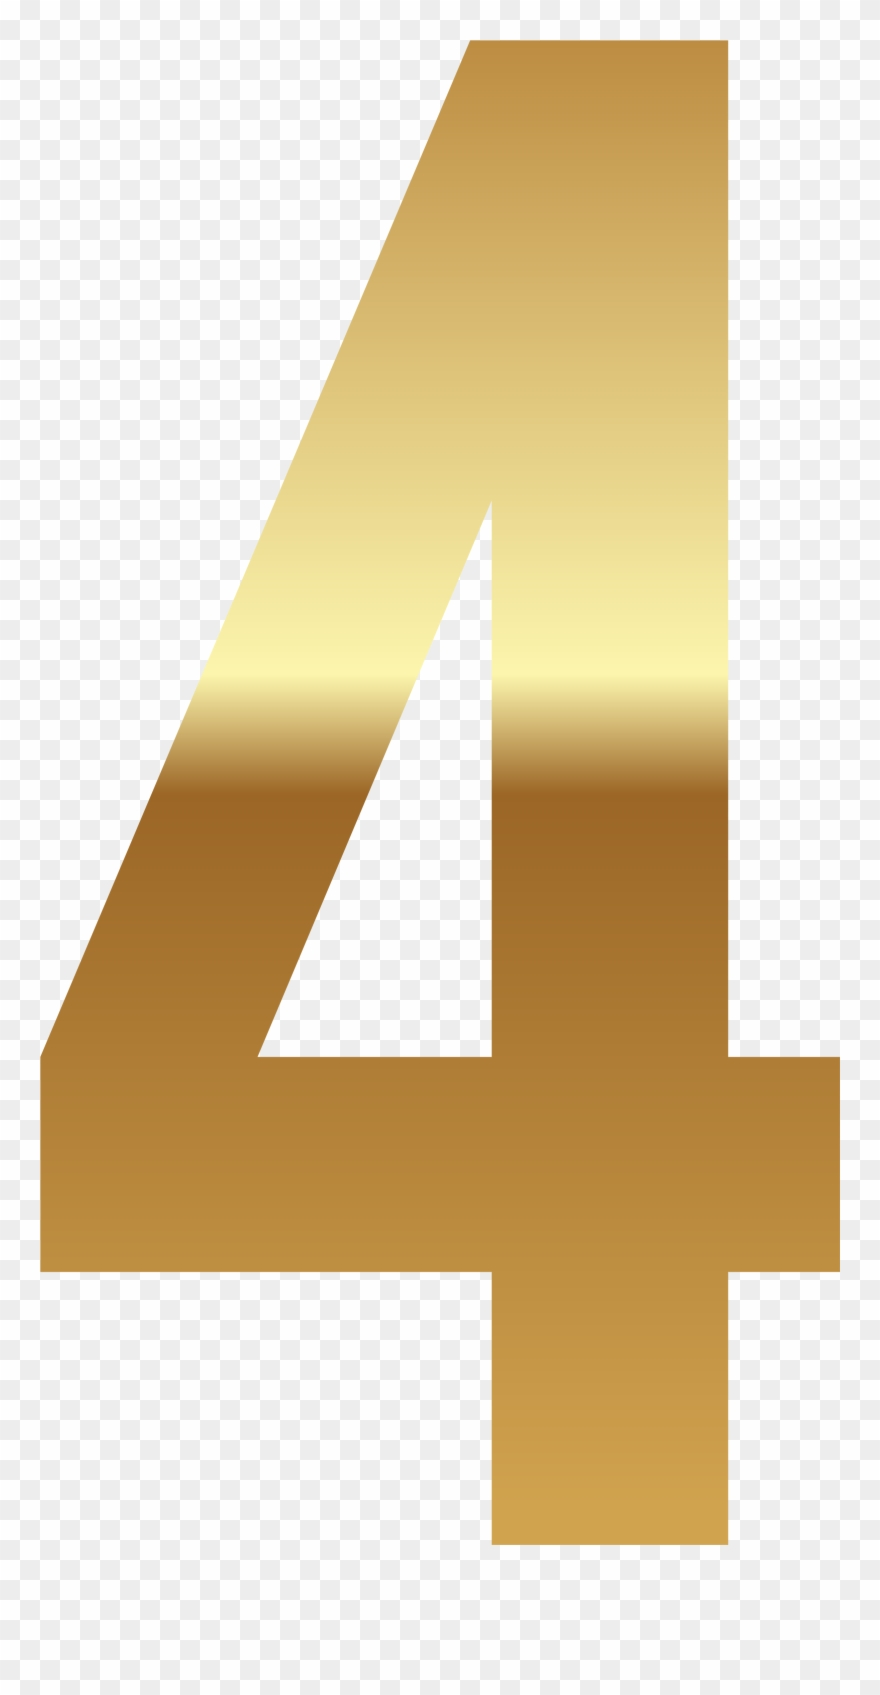 picture regarding Printable Number 4 called Golden Range, Printable Quantities, Math Quantities, Clipart